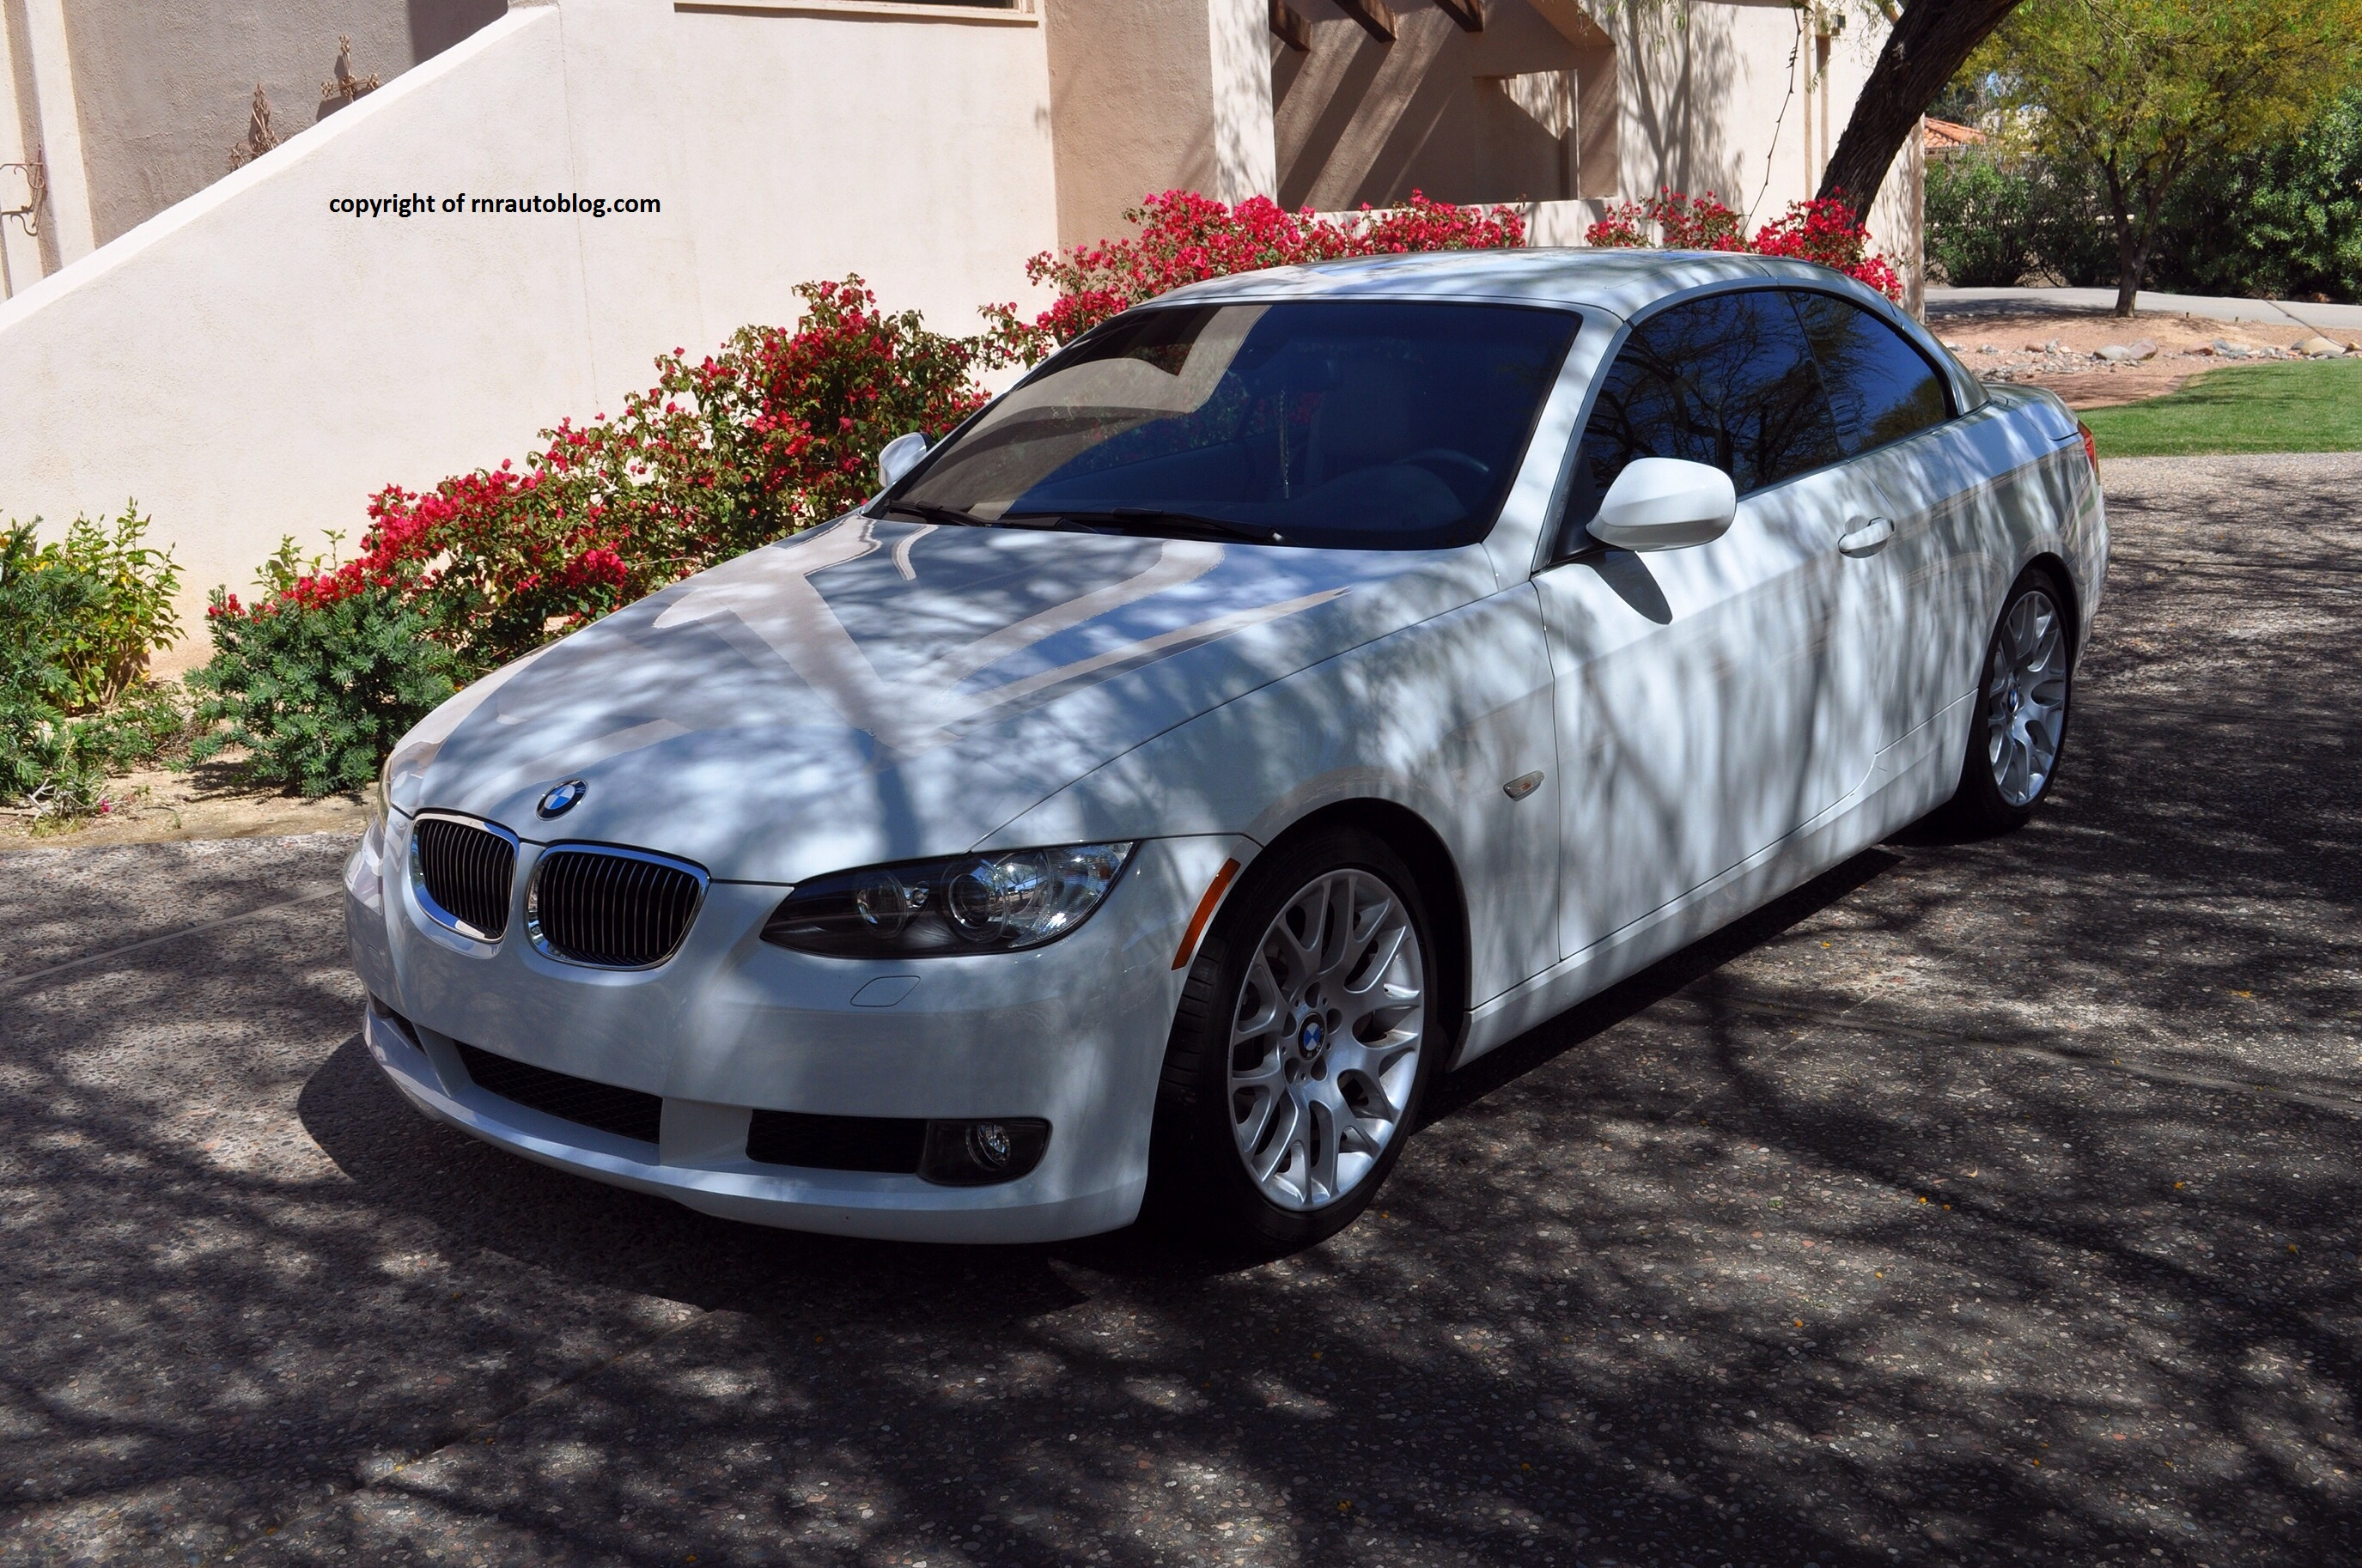 2009 Bmw 328i Convertible Review Rnr Automotive Blog